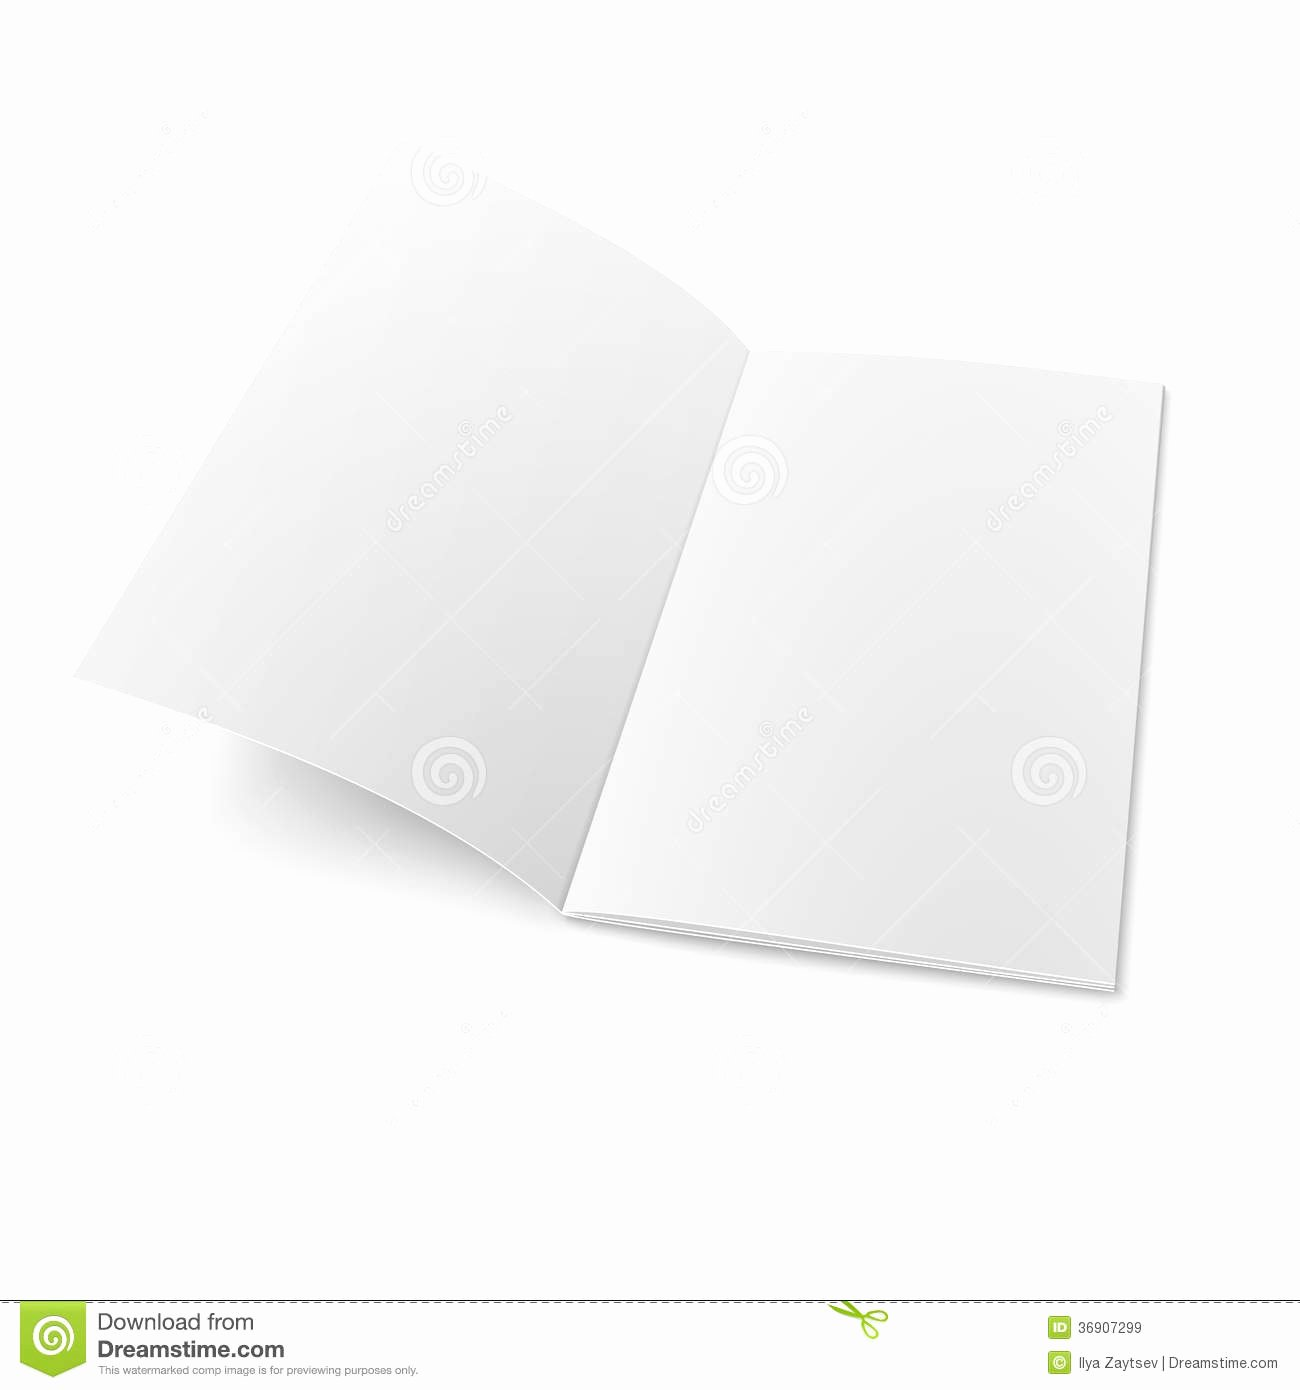 Folded Business Cards Template Beautiful Folded Business Cards Template